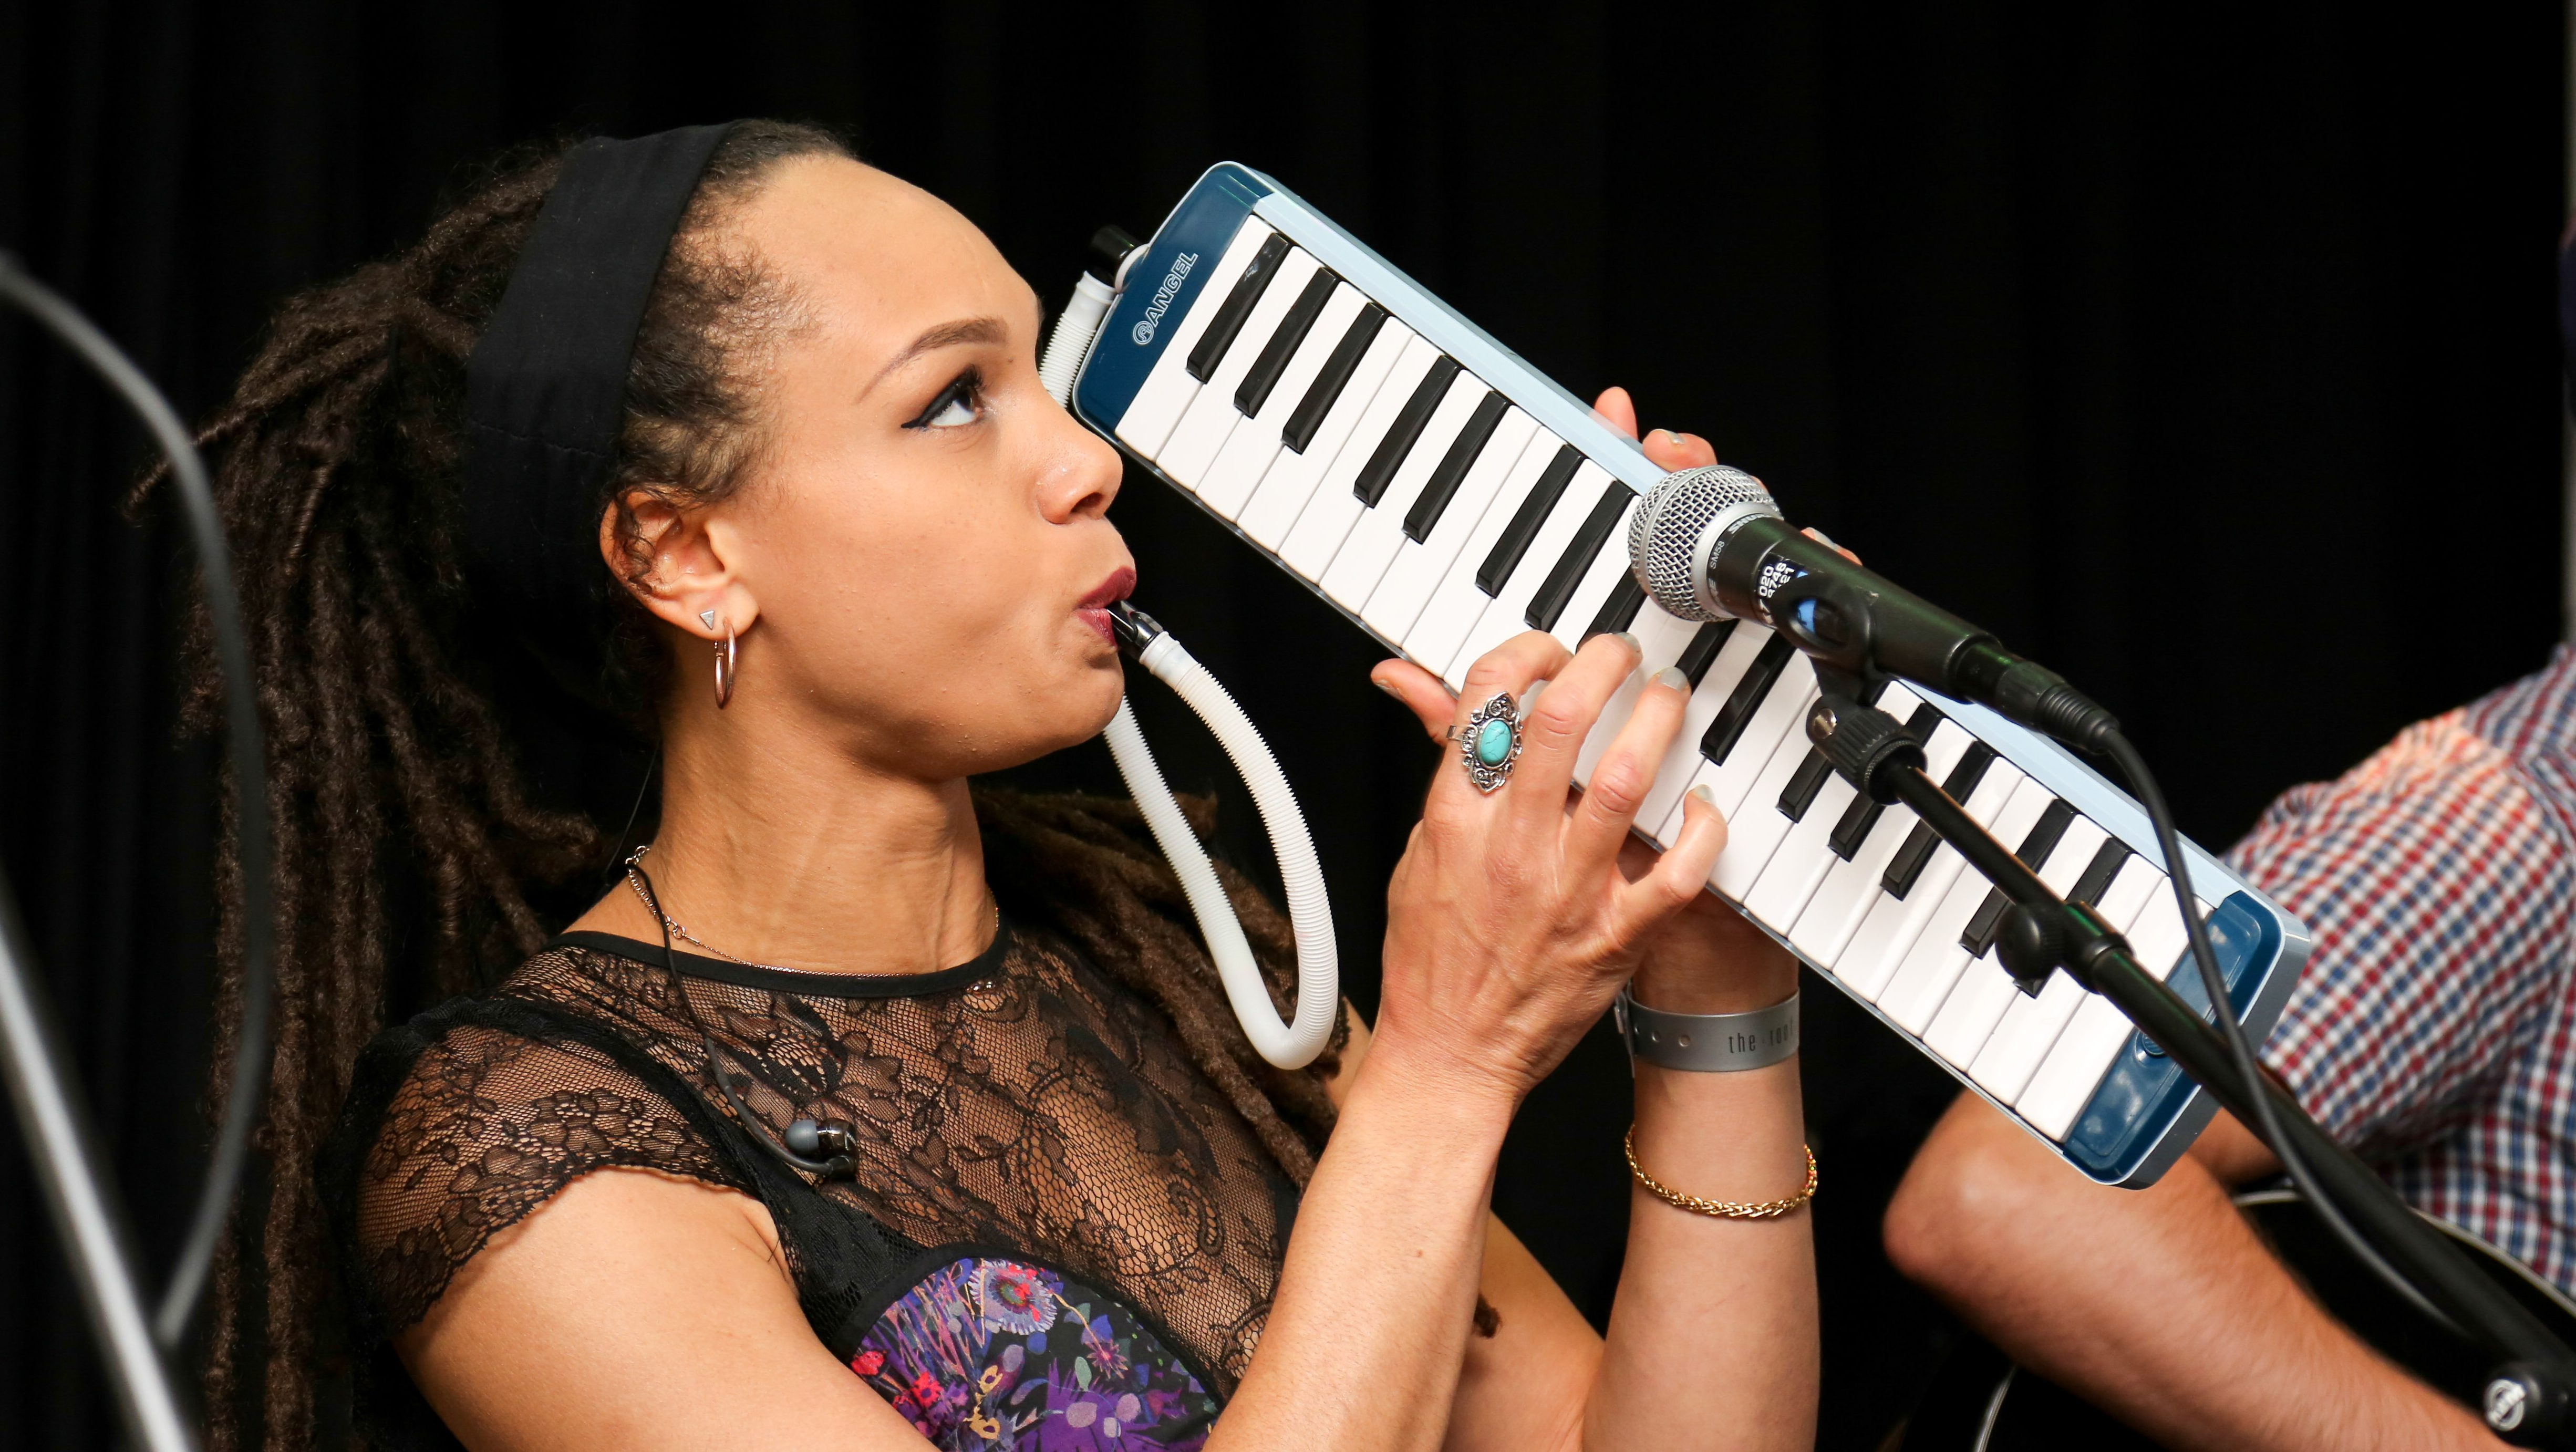 Marcia Richards playing the melodica. Photo Credit: Rex